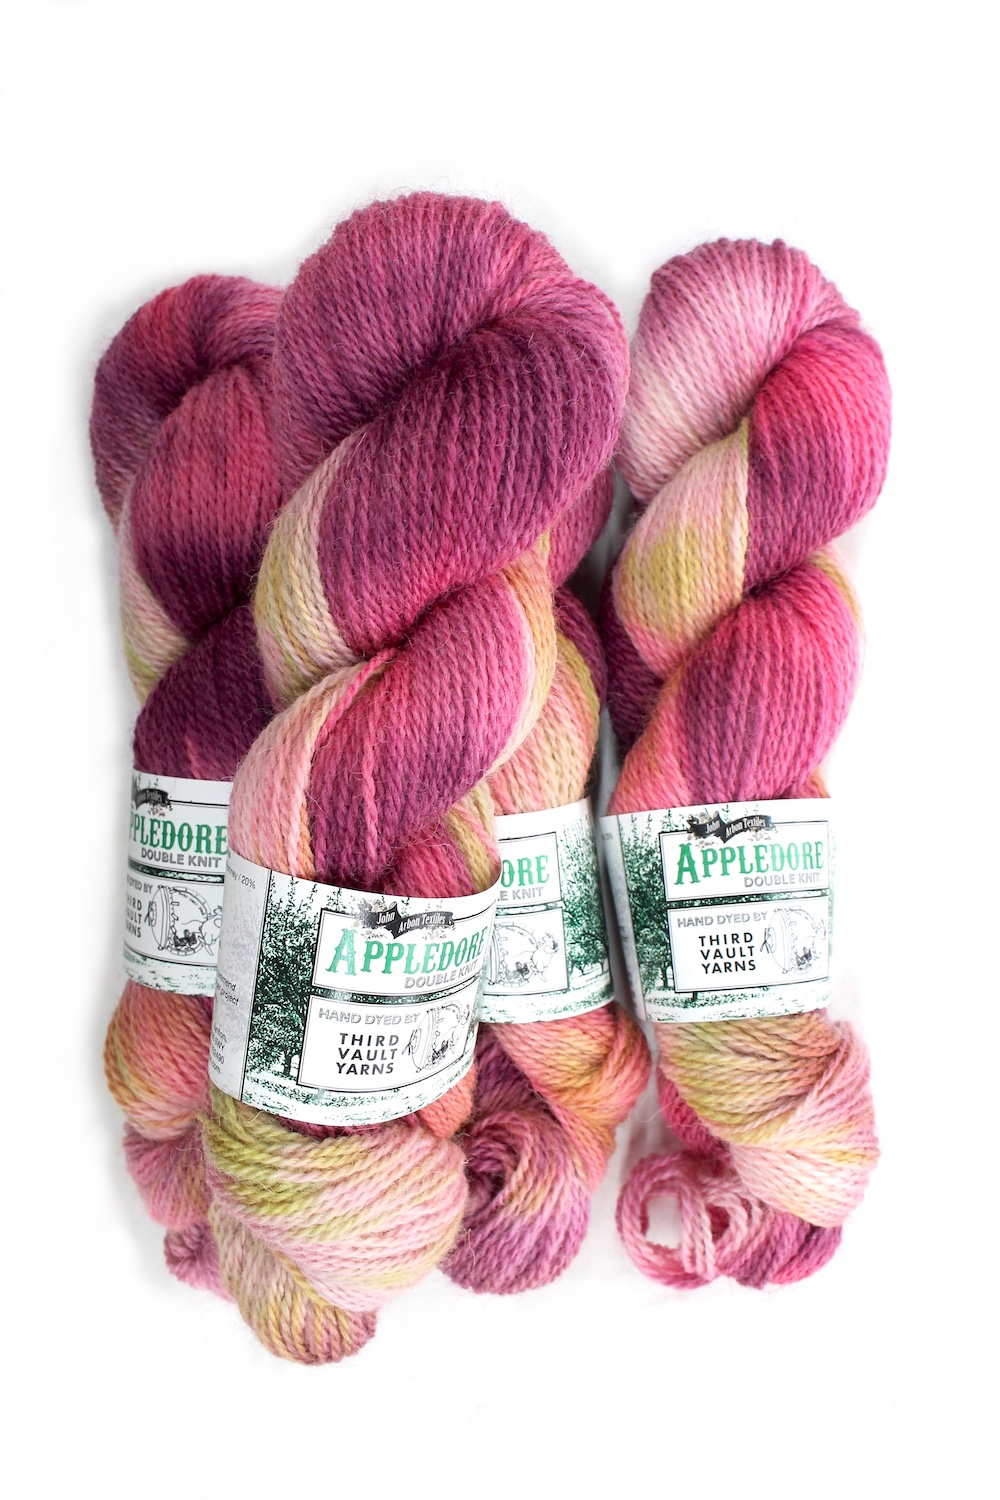 Skeins of Appledore in the Dragon Fruit colourway